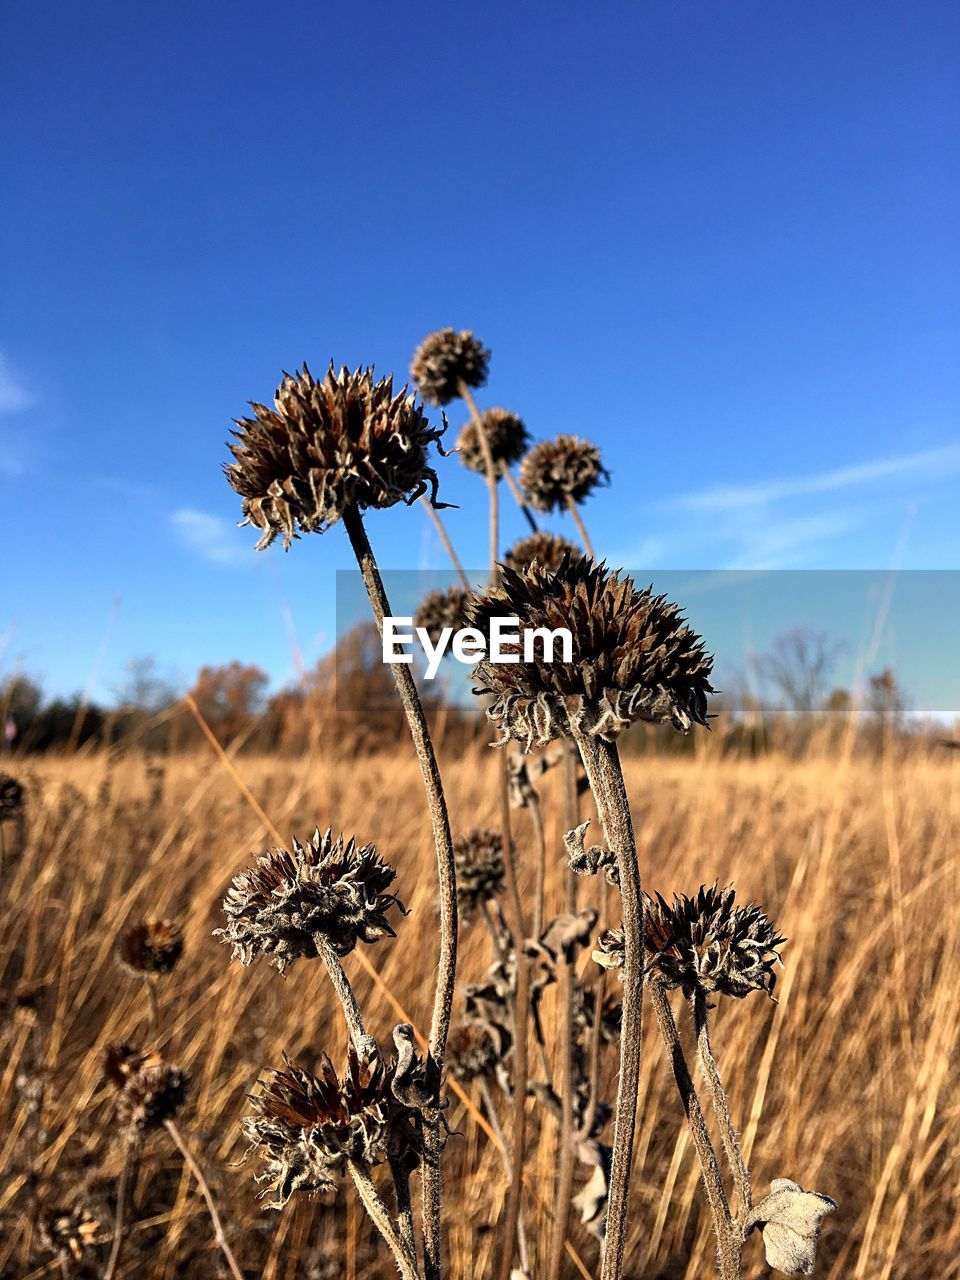 flower, nature, field, fragility, growth, plant, beauty in nature, dried plant, flower head, outdoors, day, focus on foreground, no people, tranquility, blue, rural scene, sky, thistle, close-up, freshness